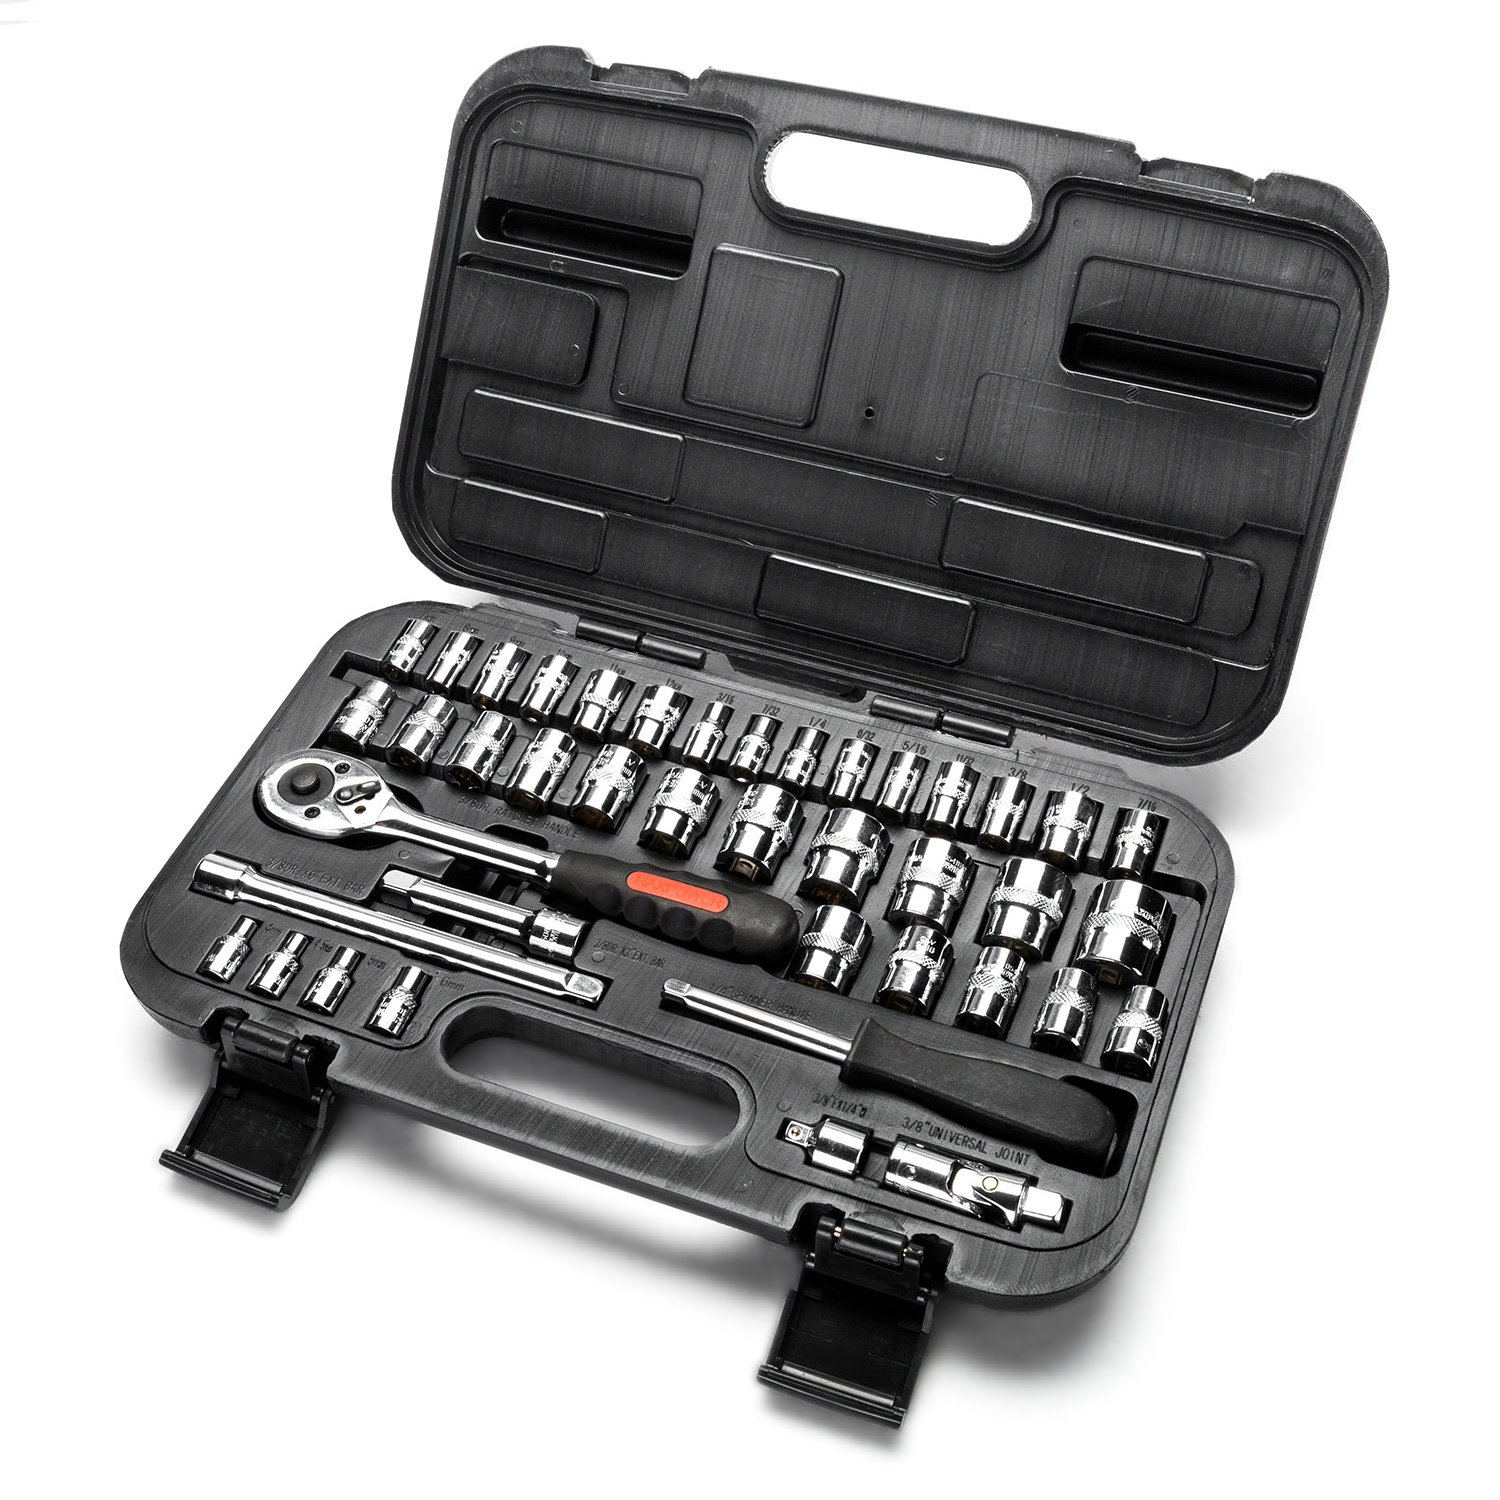 MAXPOWER 42-Piece 1/4''& 3/8'' Dr. Socket Wrench Set - Metric + SAE - With Included Sockets, Ratchet Handle, Extension Bars, Universal Joint, Adapter, Spinner Handle, and Carrying Case by MAXPOWER